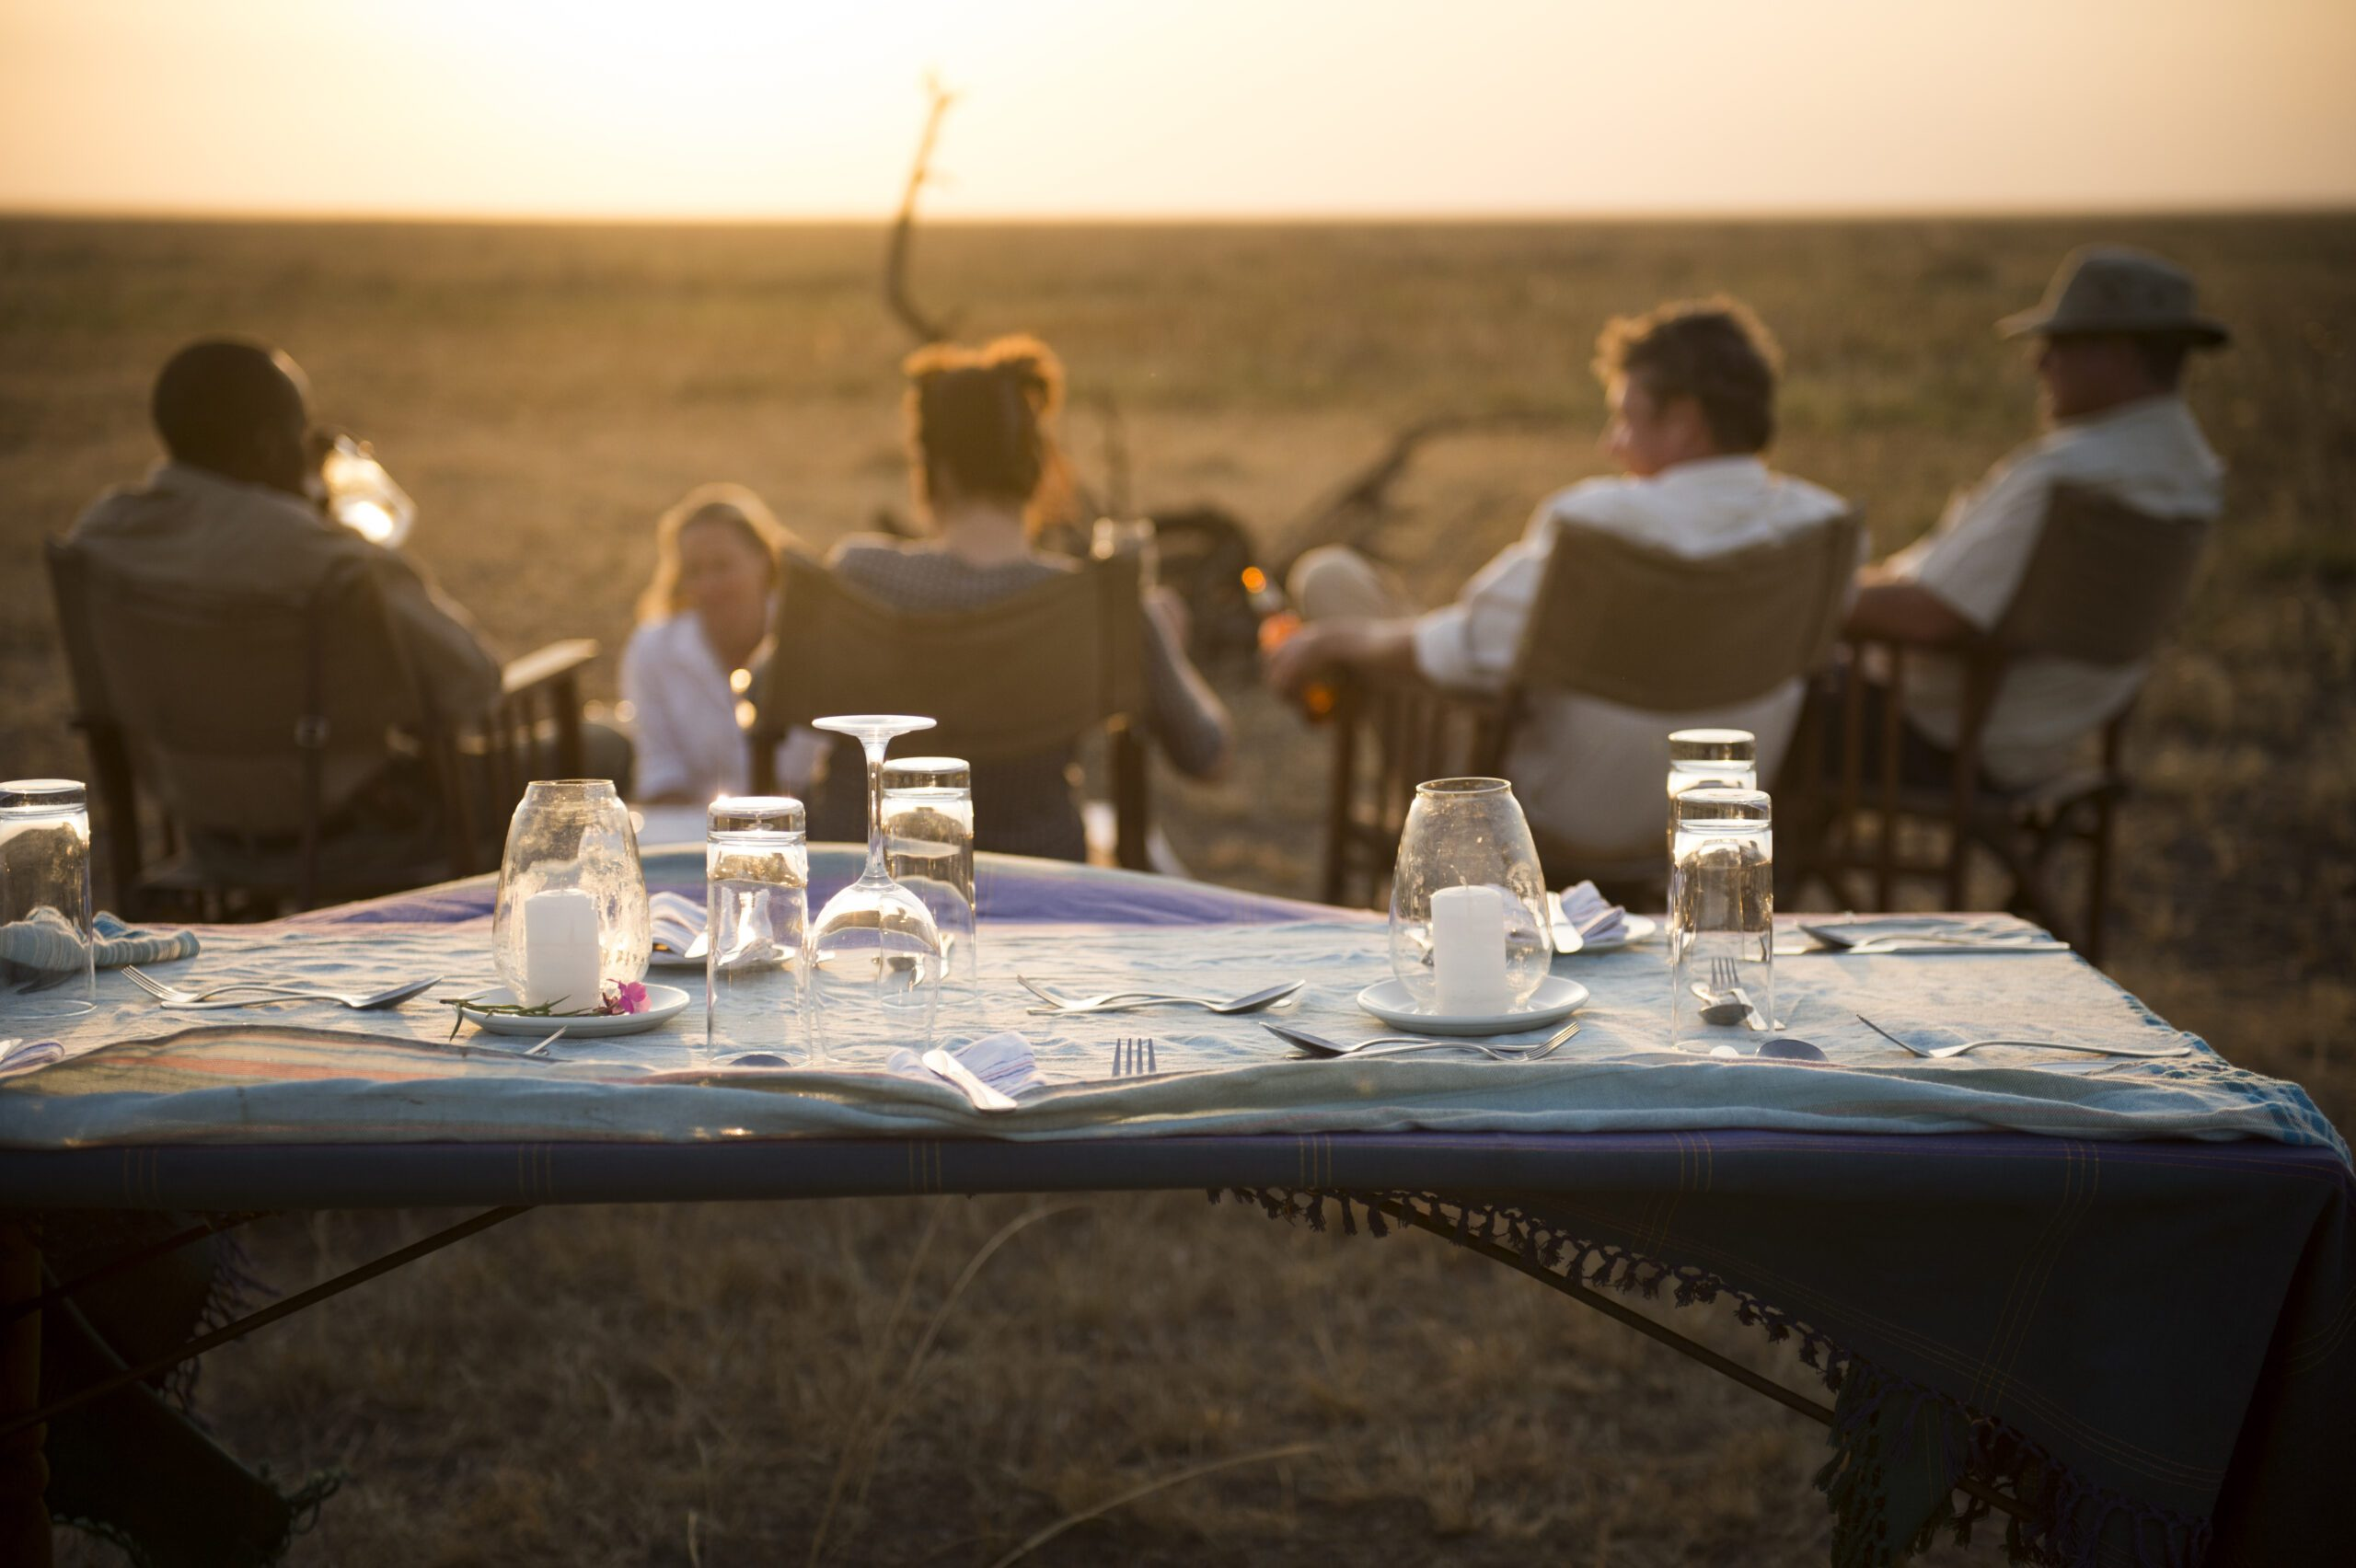 table set up outside with guests sitting in chairs looking out onto the open plains at sunset